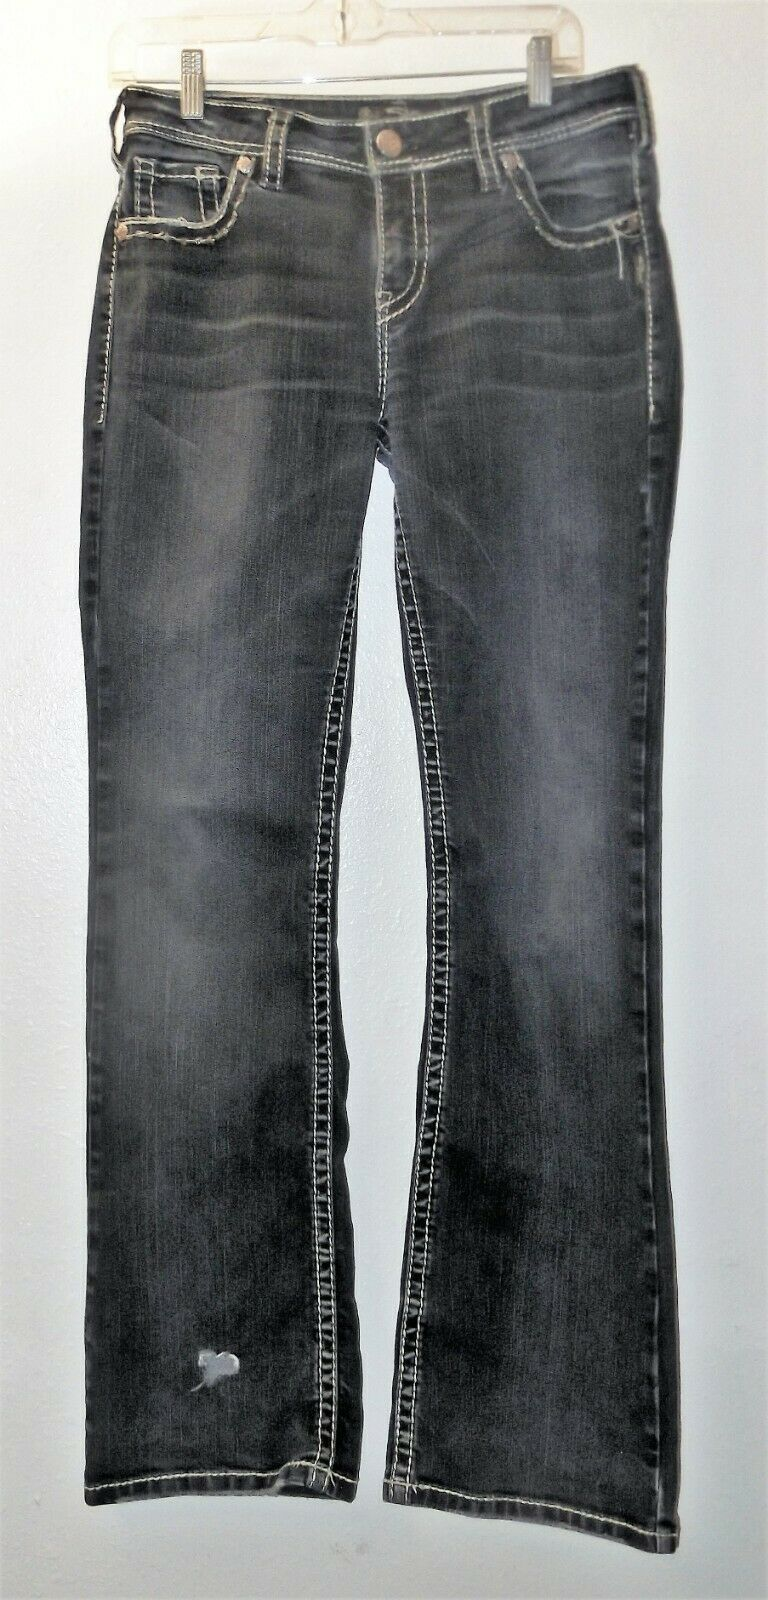 Primary image for Silver Natsuki Women's Boot Cut Dark Wash Flap Pocket Jeans W 31 L 33